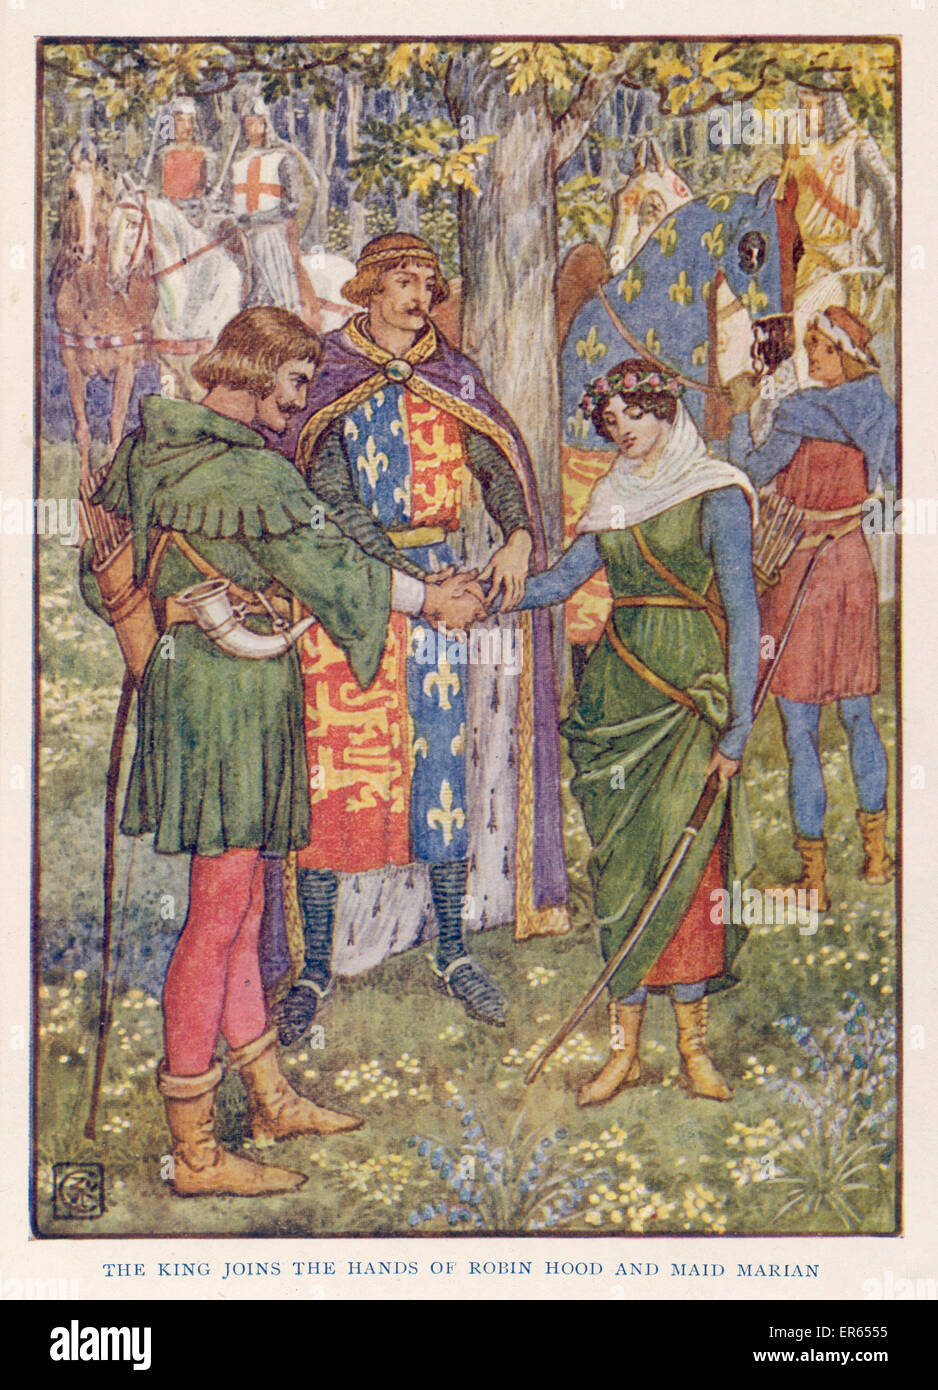 King Richard I joins the hands of Robin Hood and Maid Marian in marriage. - Stock Image